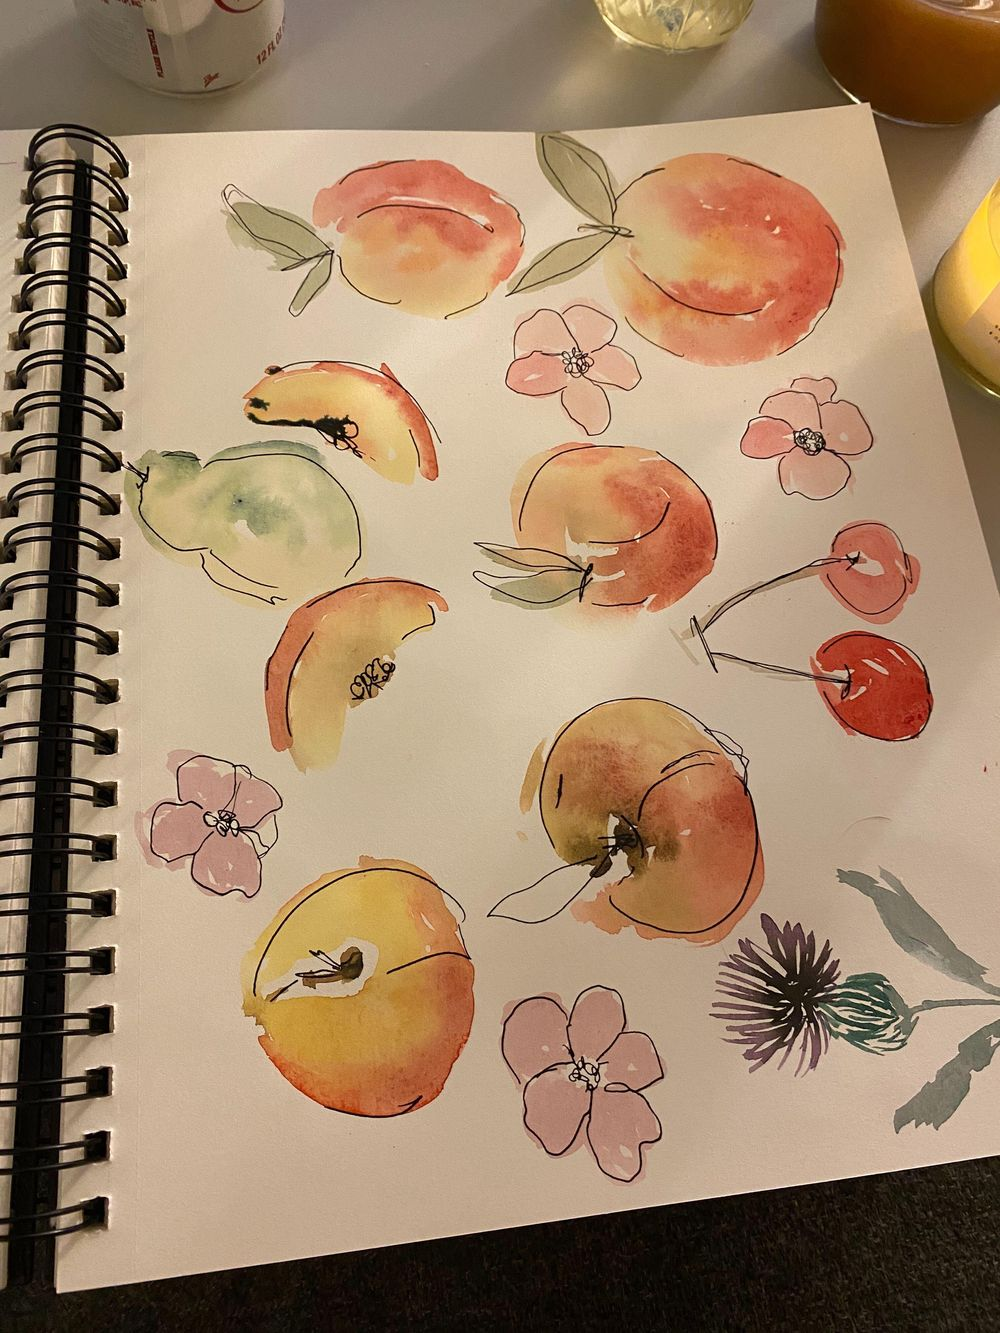 watercolor + ink practice - image 8 - student project